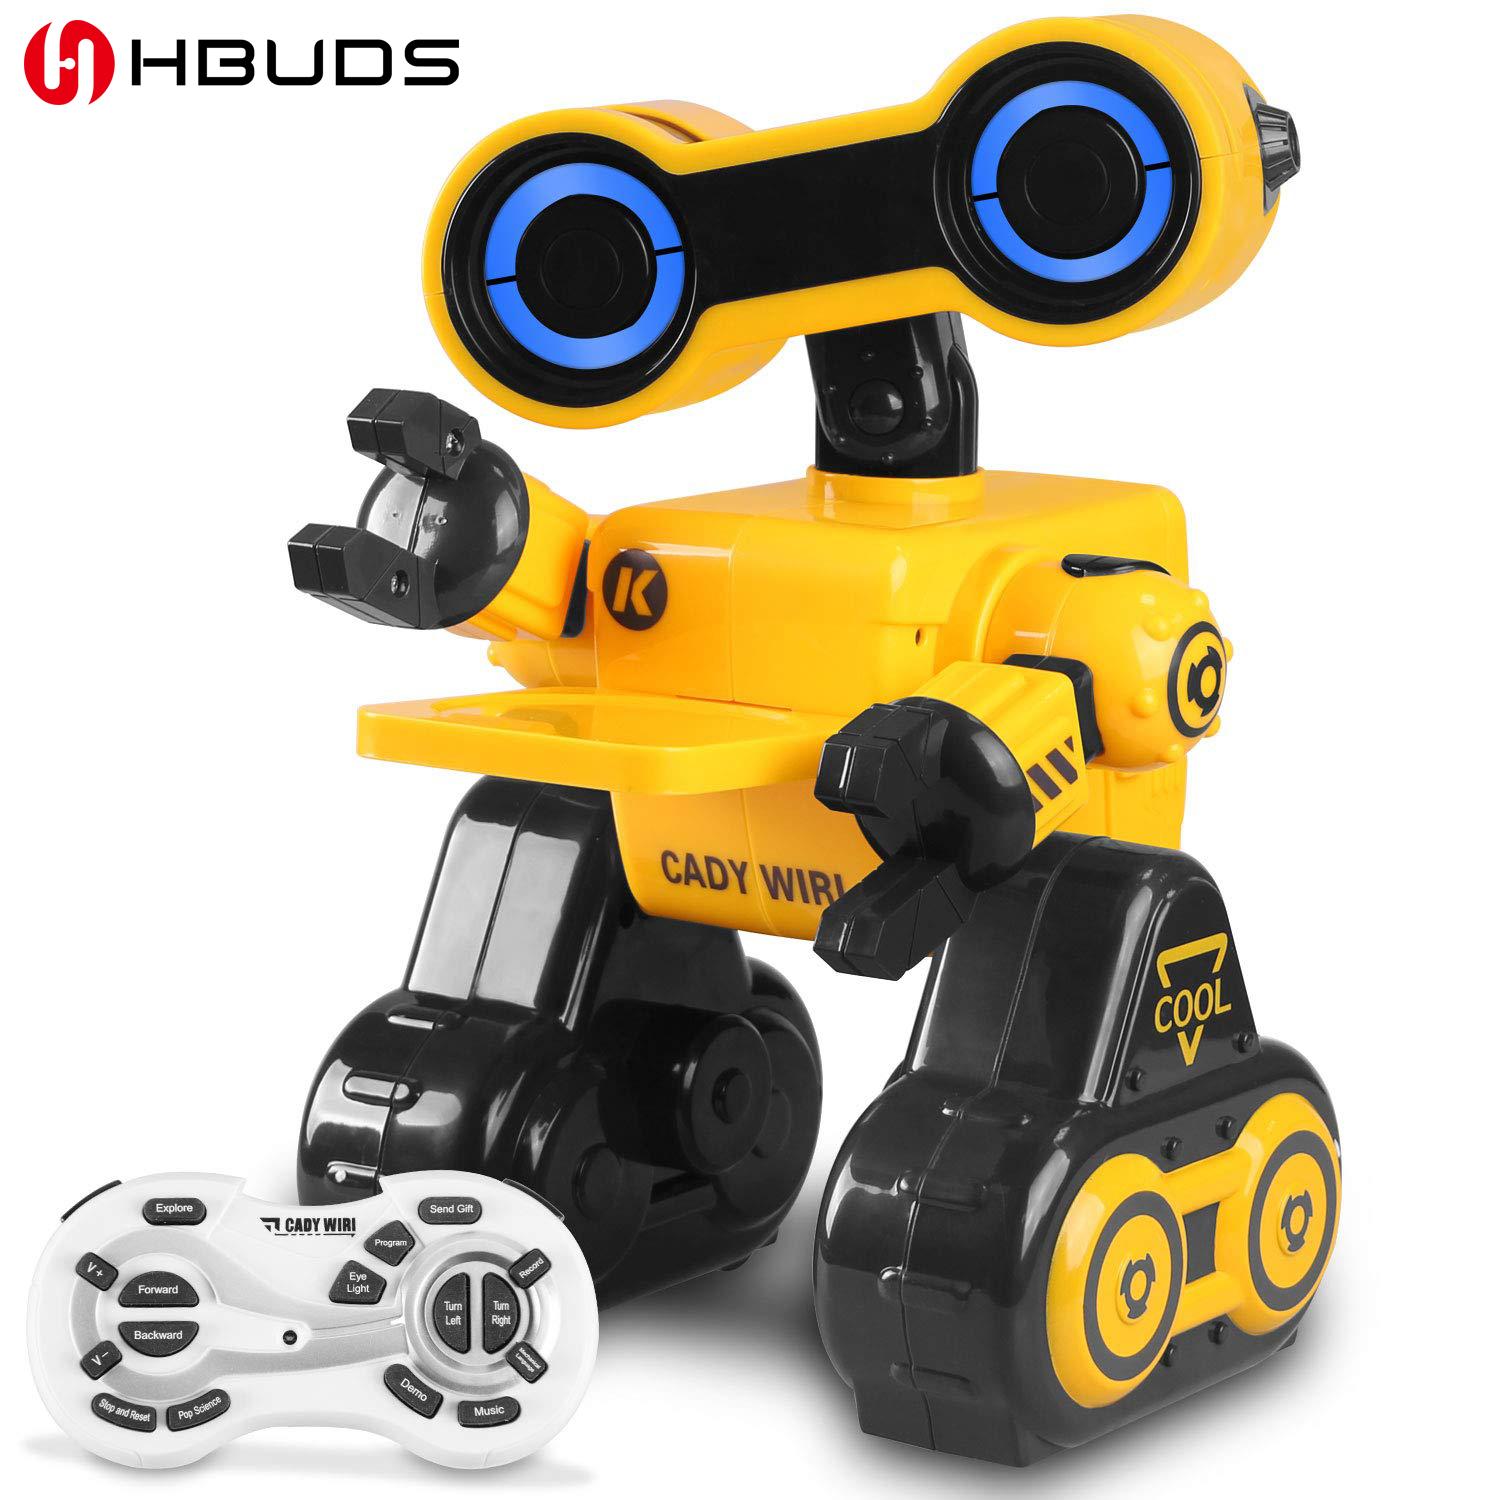 Robot Toy Remote Voice Control Programmable Touch Sensing STEM Educational Robot Toy with Interactive Feature to